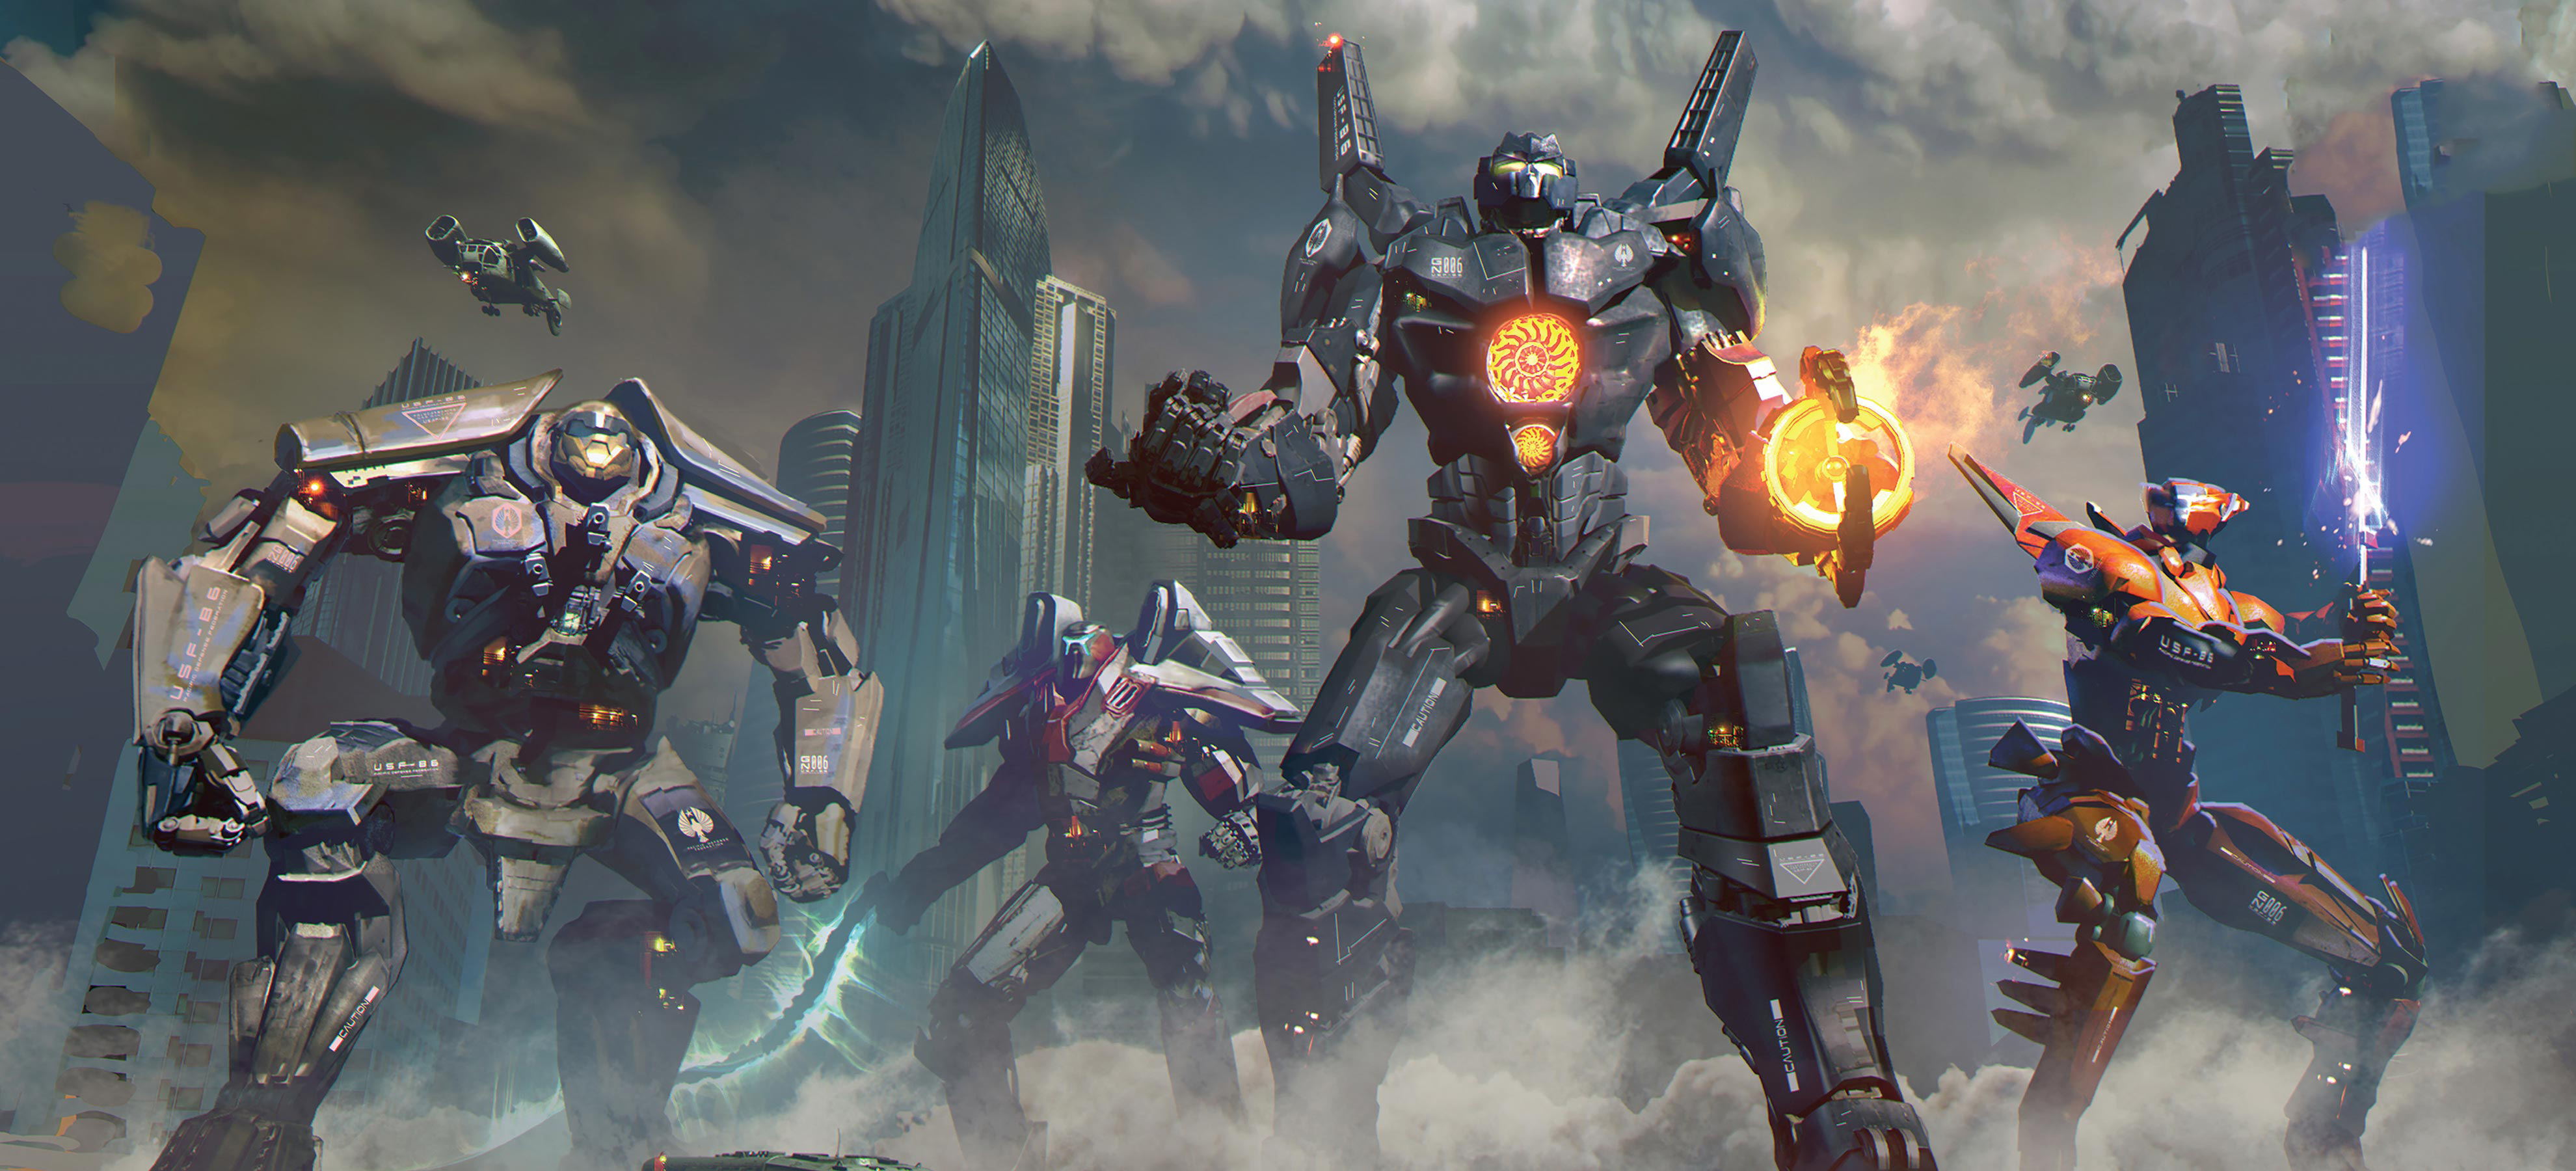 Pacific Rim Uprising 2018 Artwork Hd Movies 4k Wallpapers Images Backgrounds Photos And Pictures